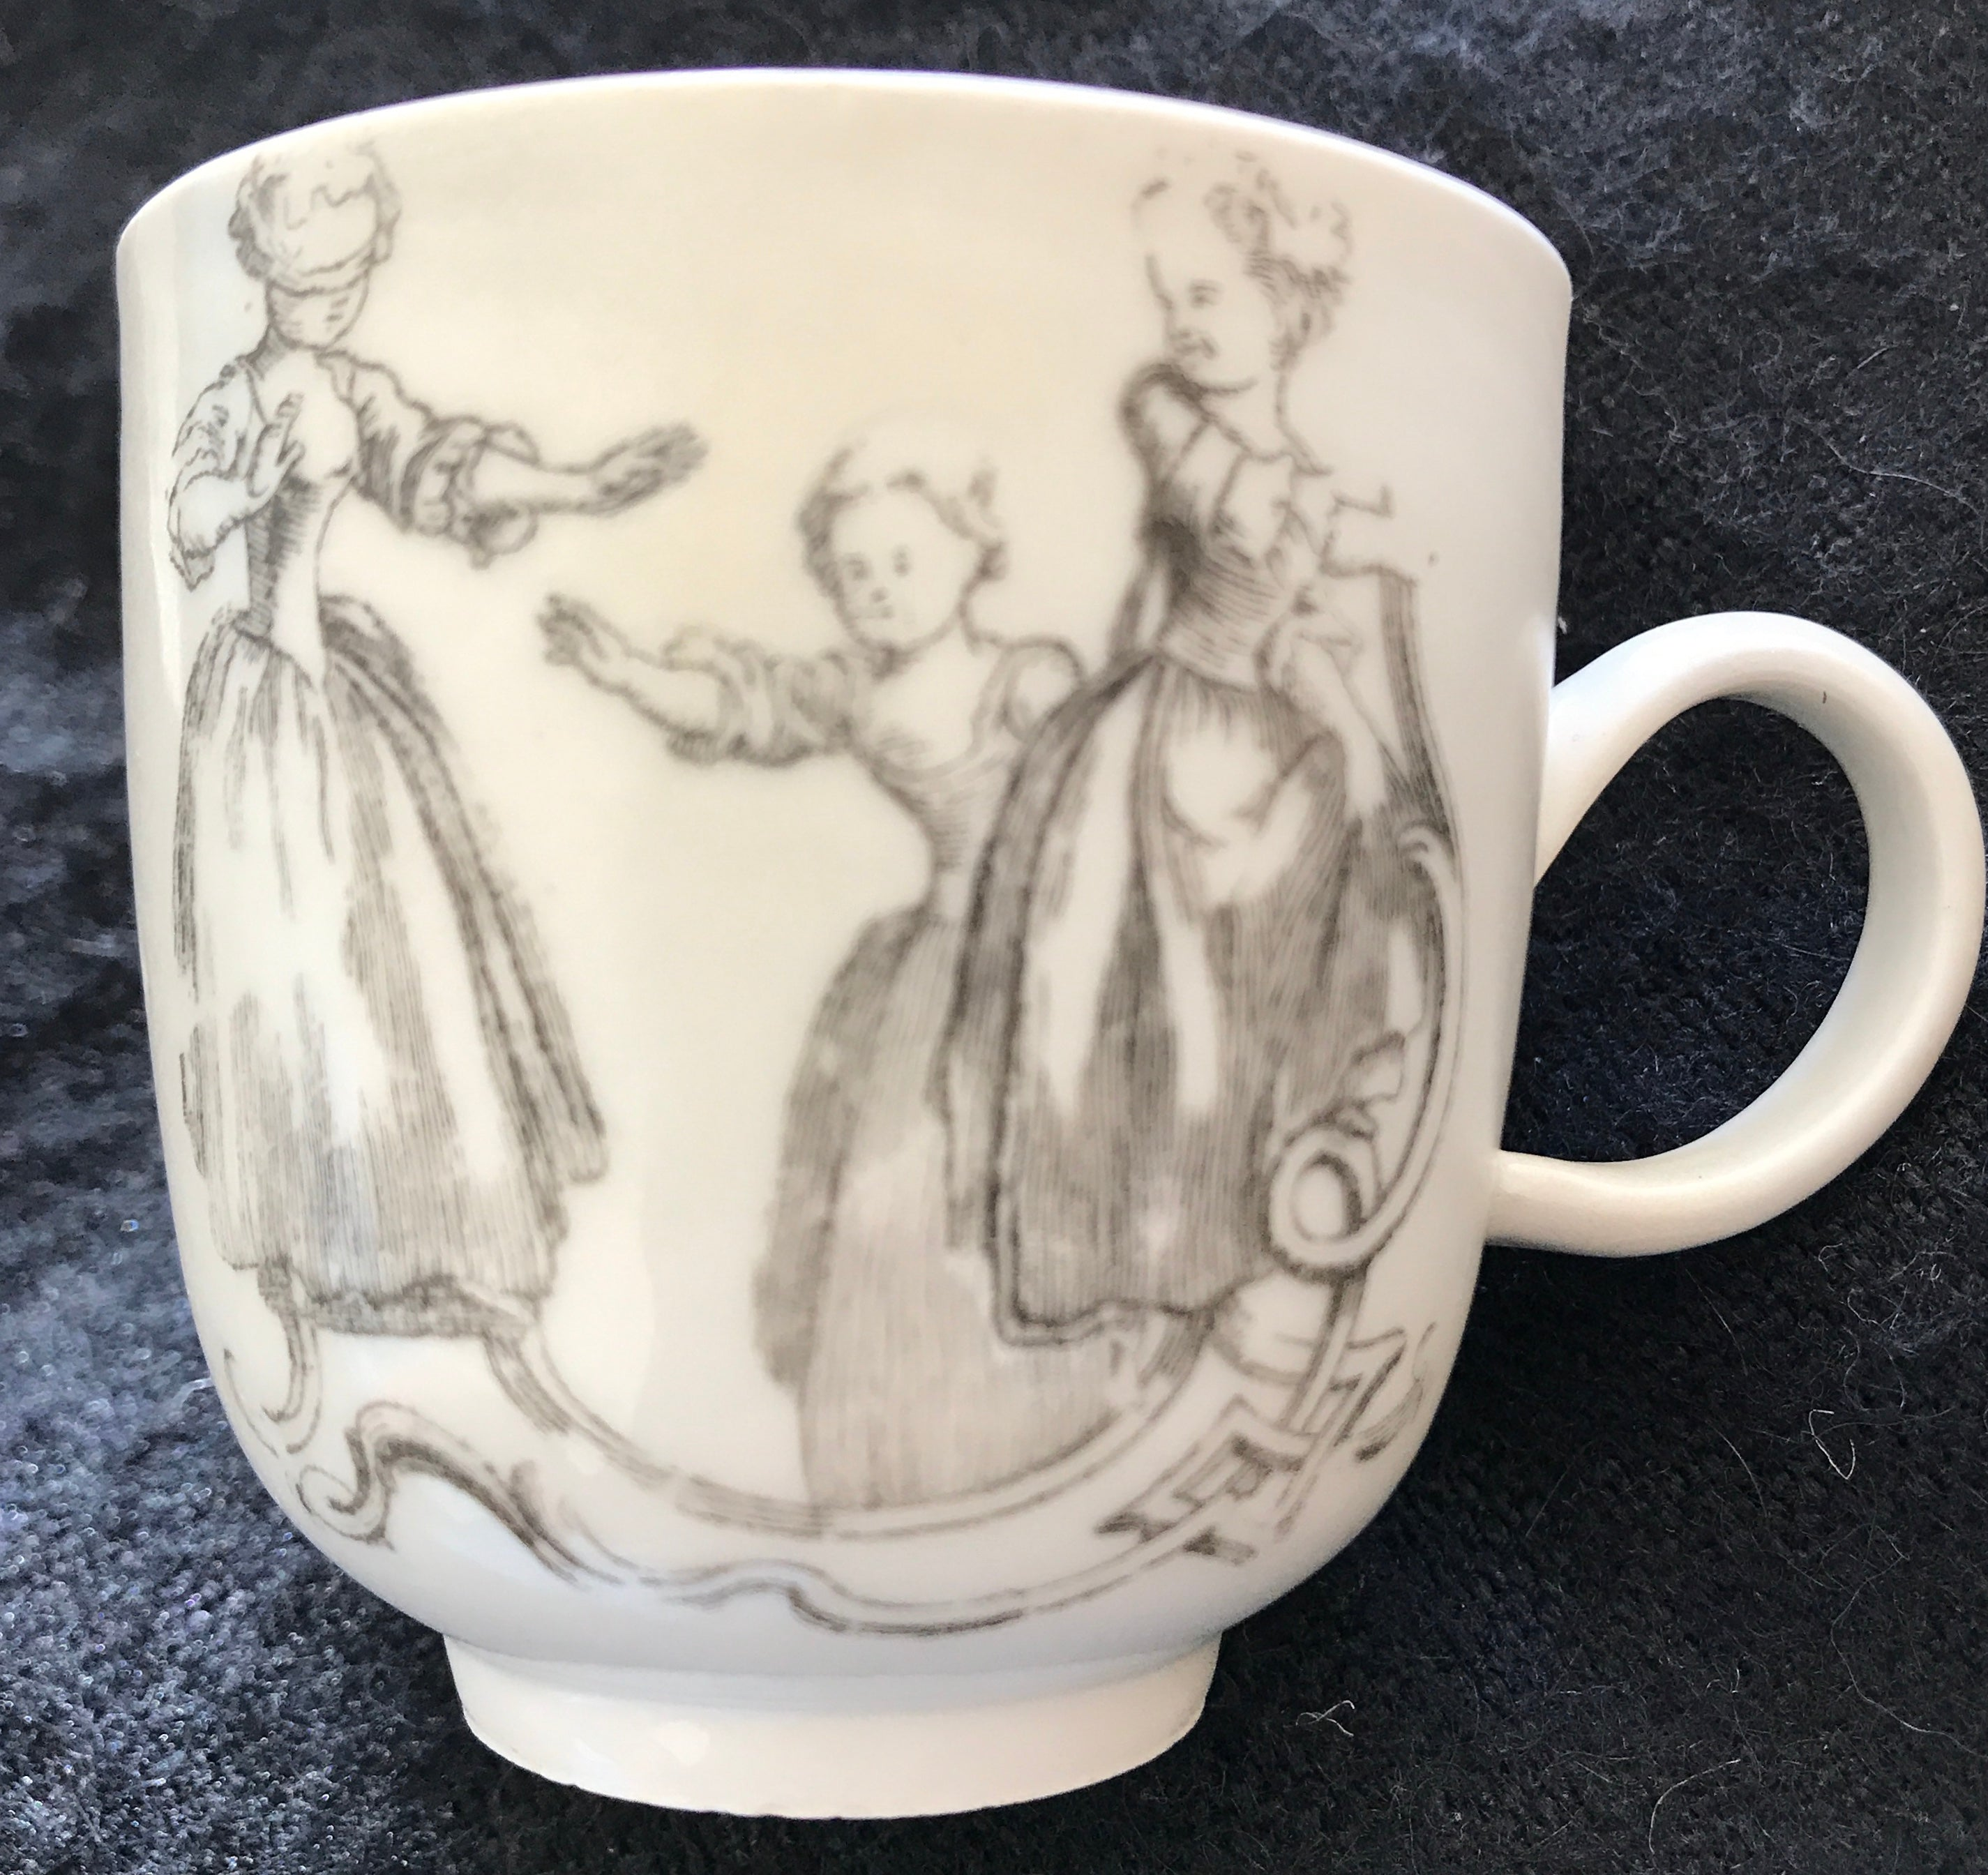 18th Century Bristol Porcelain Coffee Cup Transfer Printed after Robert Hancock.